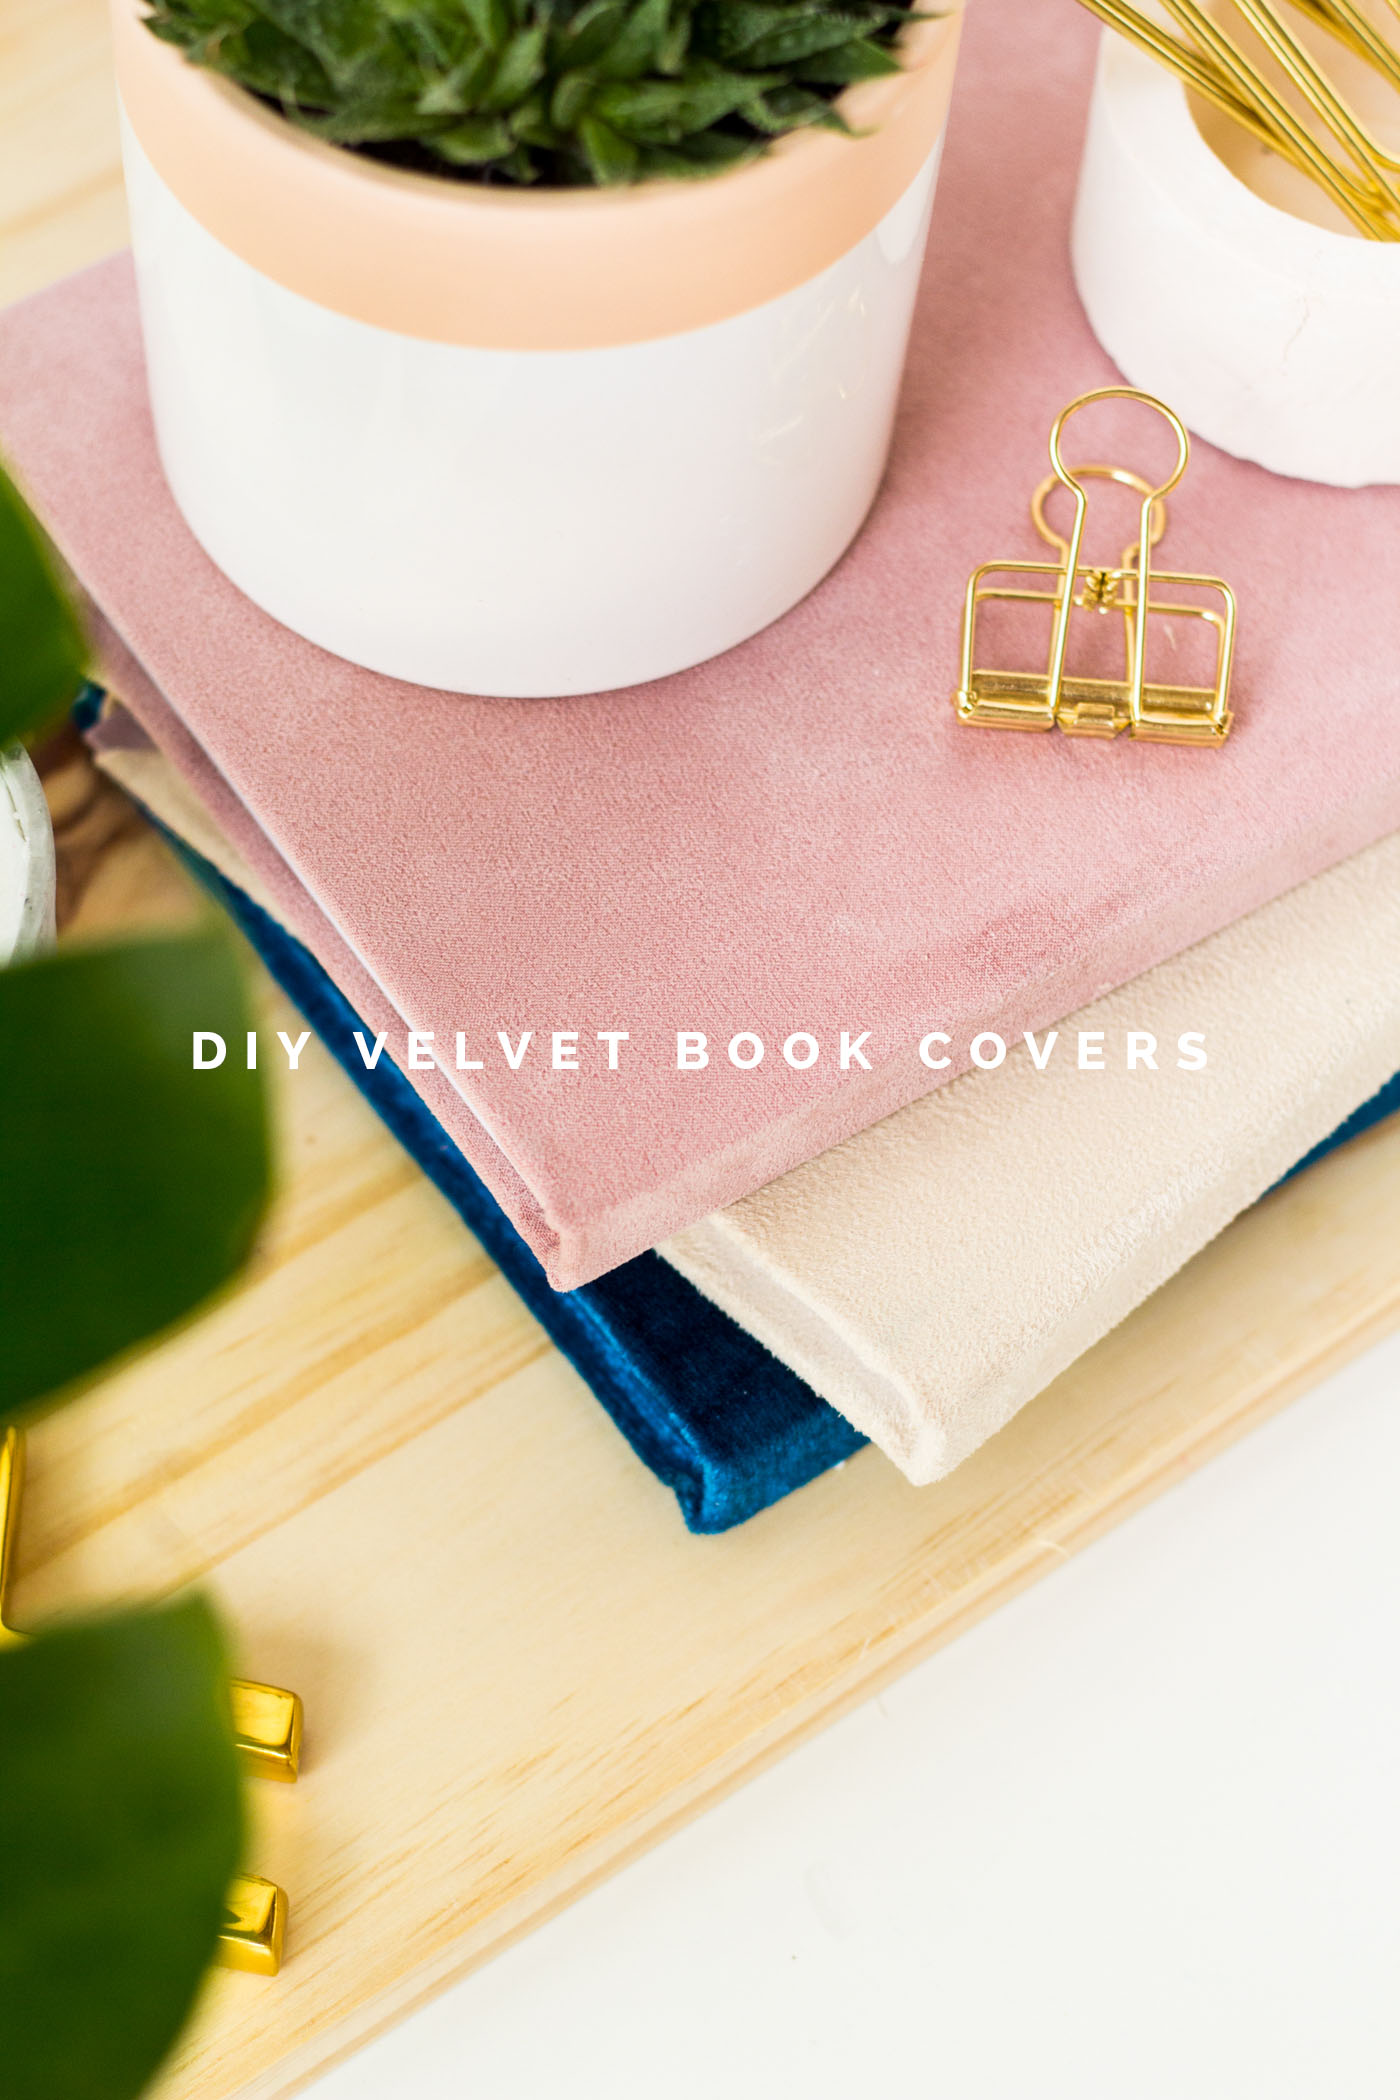 DIY Velvet book covers tutorial | @fallfordiy